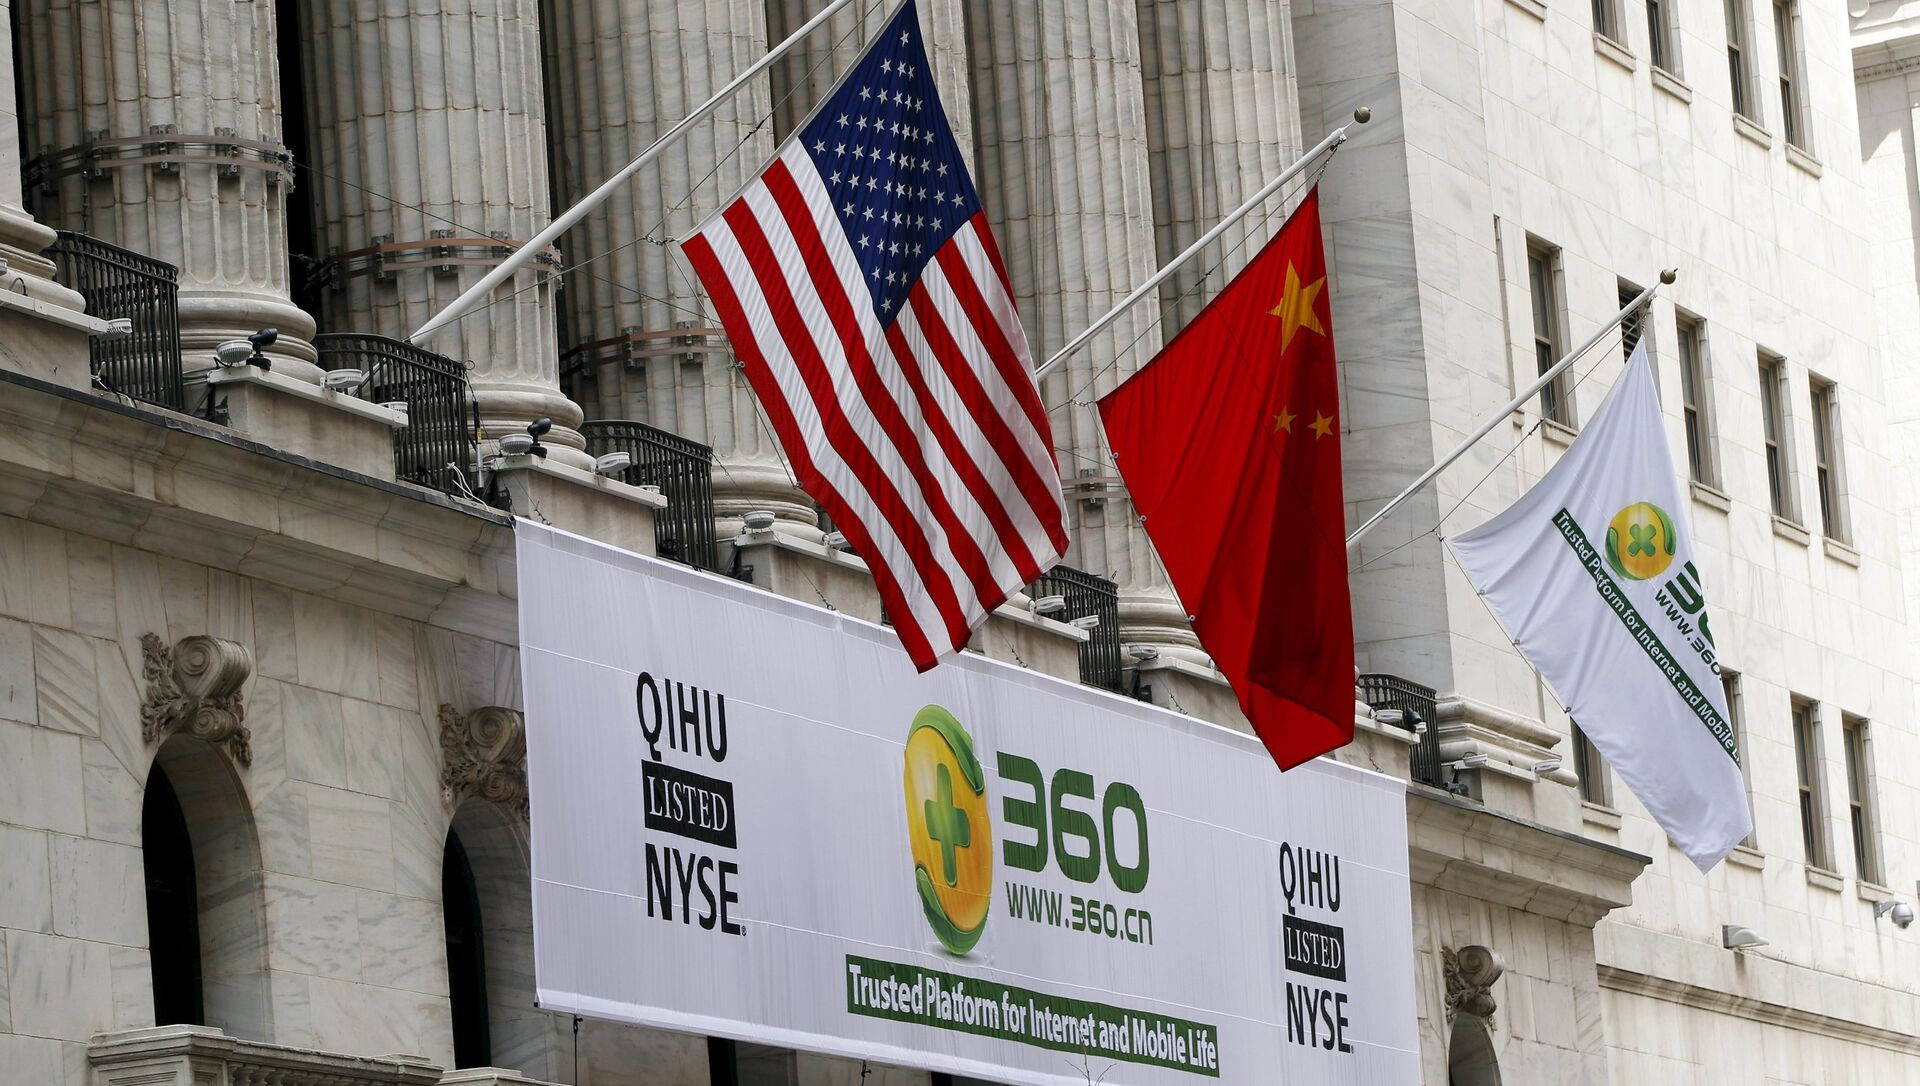 A sign advertising the Qihoo 360 Technology Co Ltd is hung with the U.S. and Chinese flags outside of the New York Stock Exchange before the company's Initial Public Offering (IPO) in New York in this March 30, 2011 file picture - Sputnik International, 1920, 28.07.2021